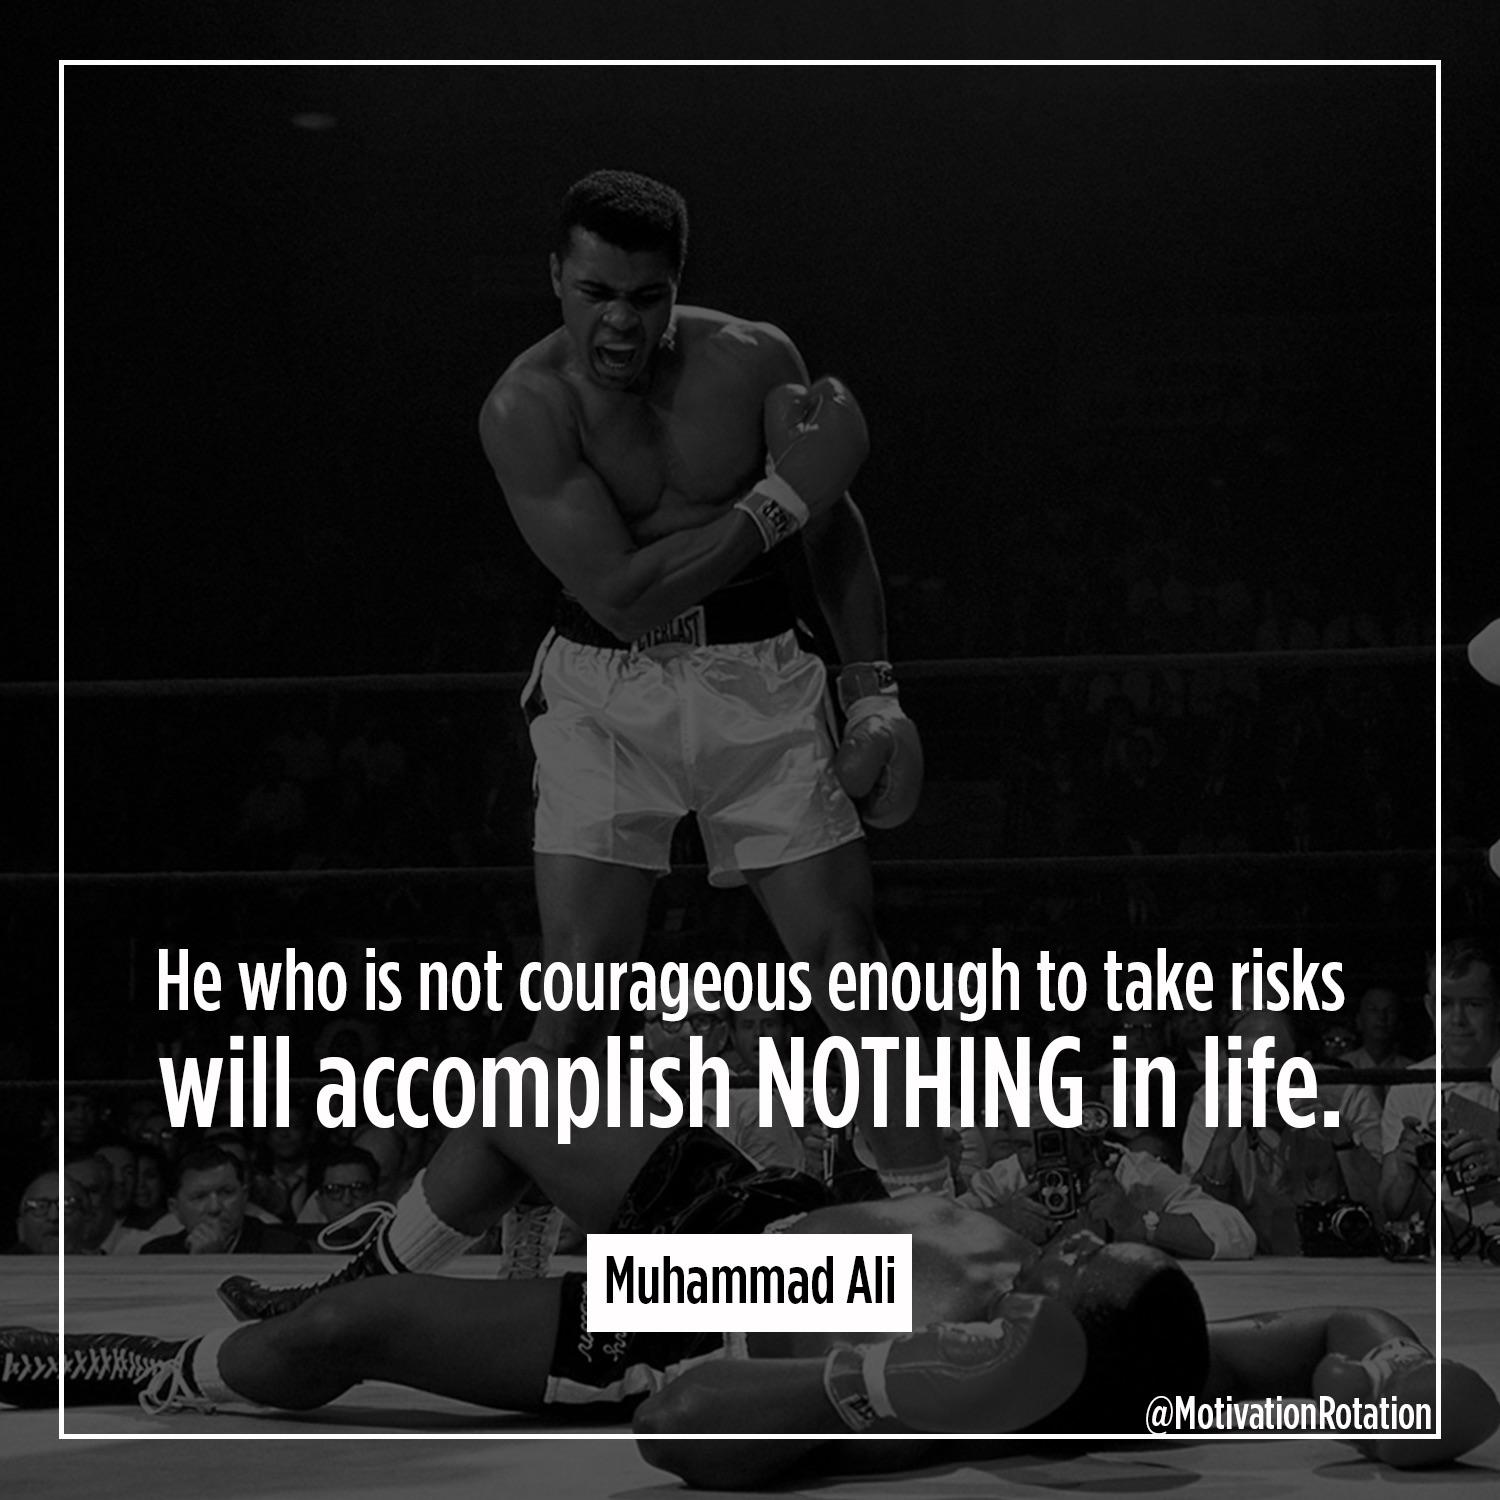 [Image] You must take risks to accomplish anything.